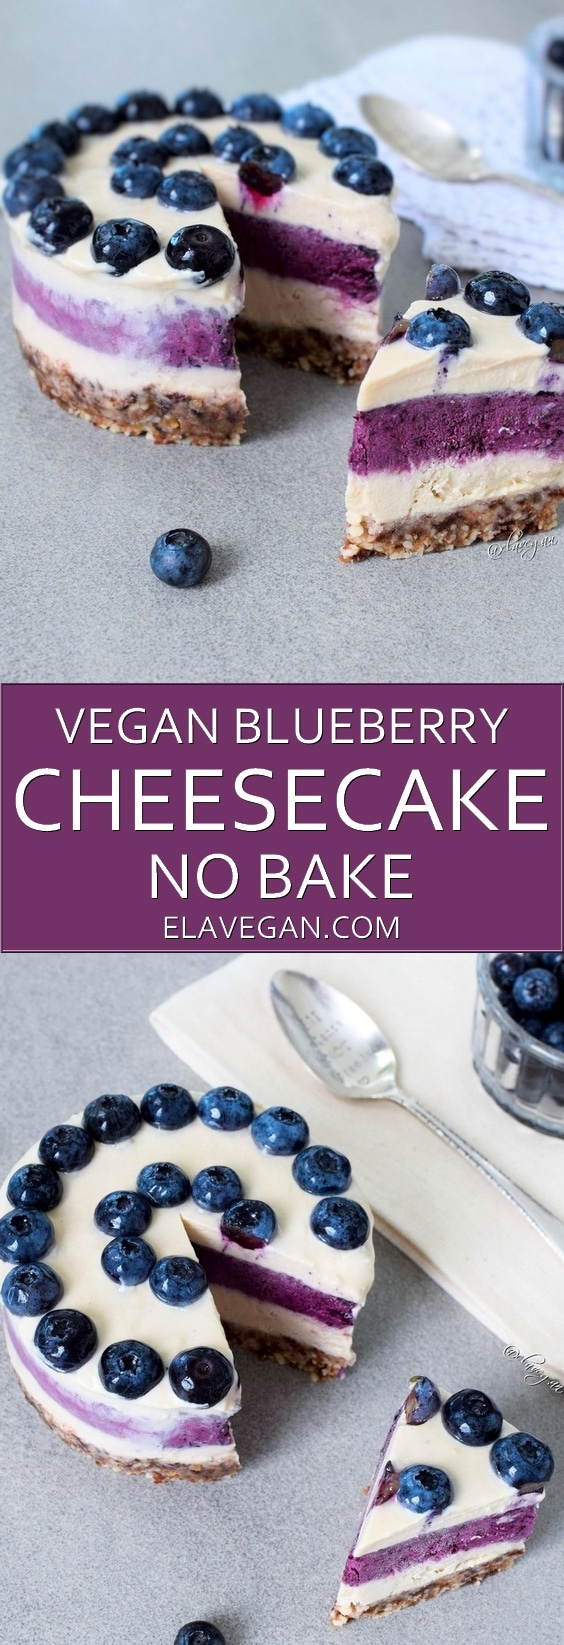 Raw vegan blueberry cheesecake recipe which is plant-based, paleo friendly and gluten free